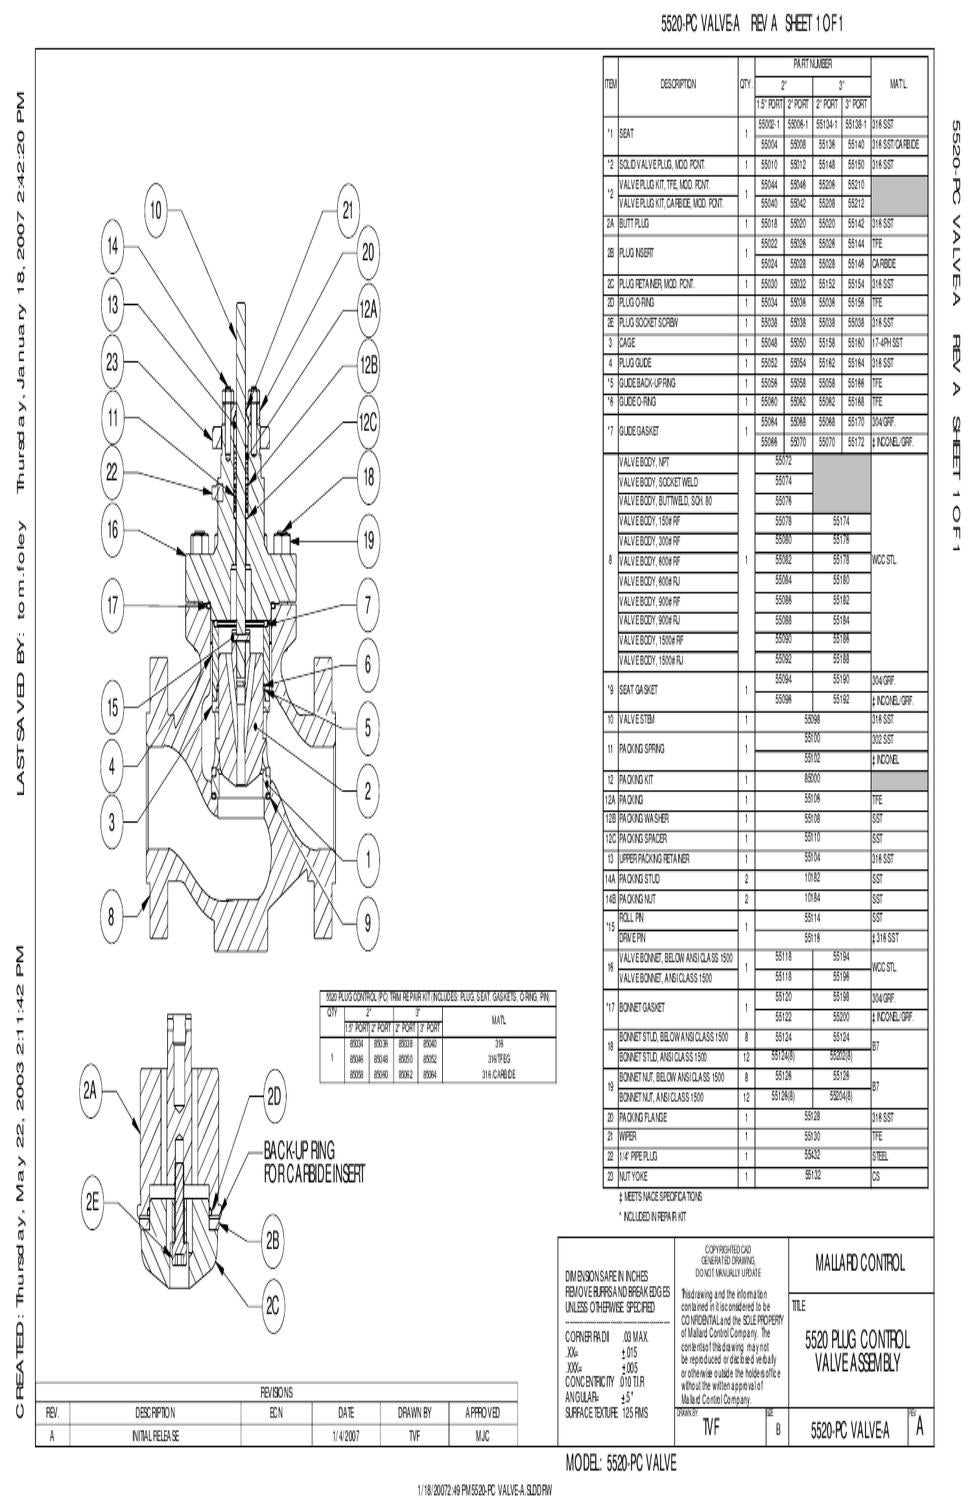 5520 Valve Plug Control Main Schematic by RMC Process